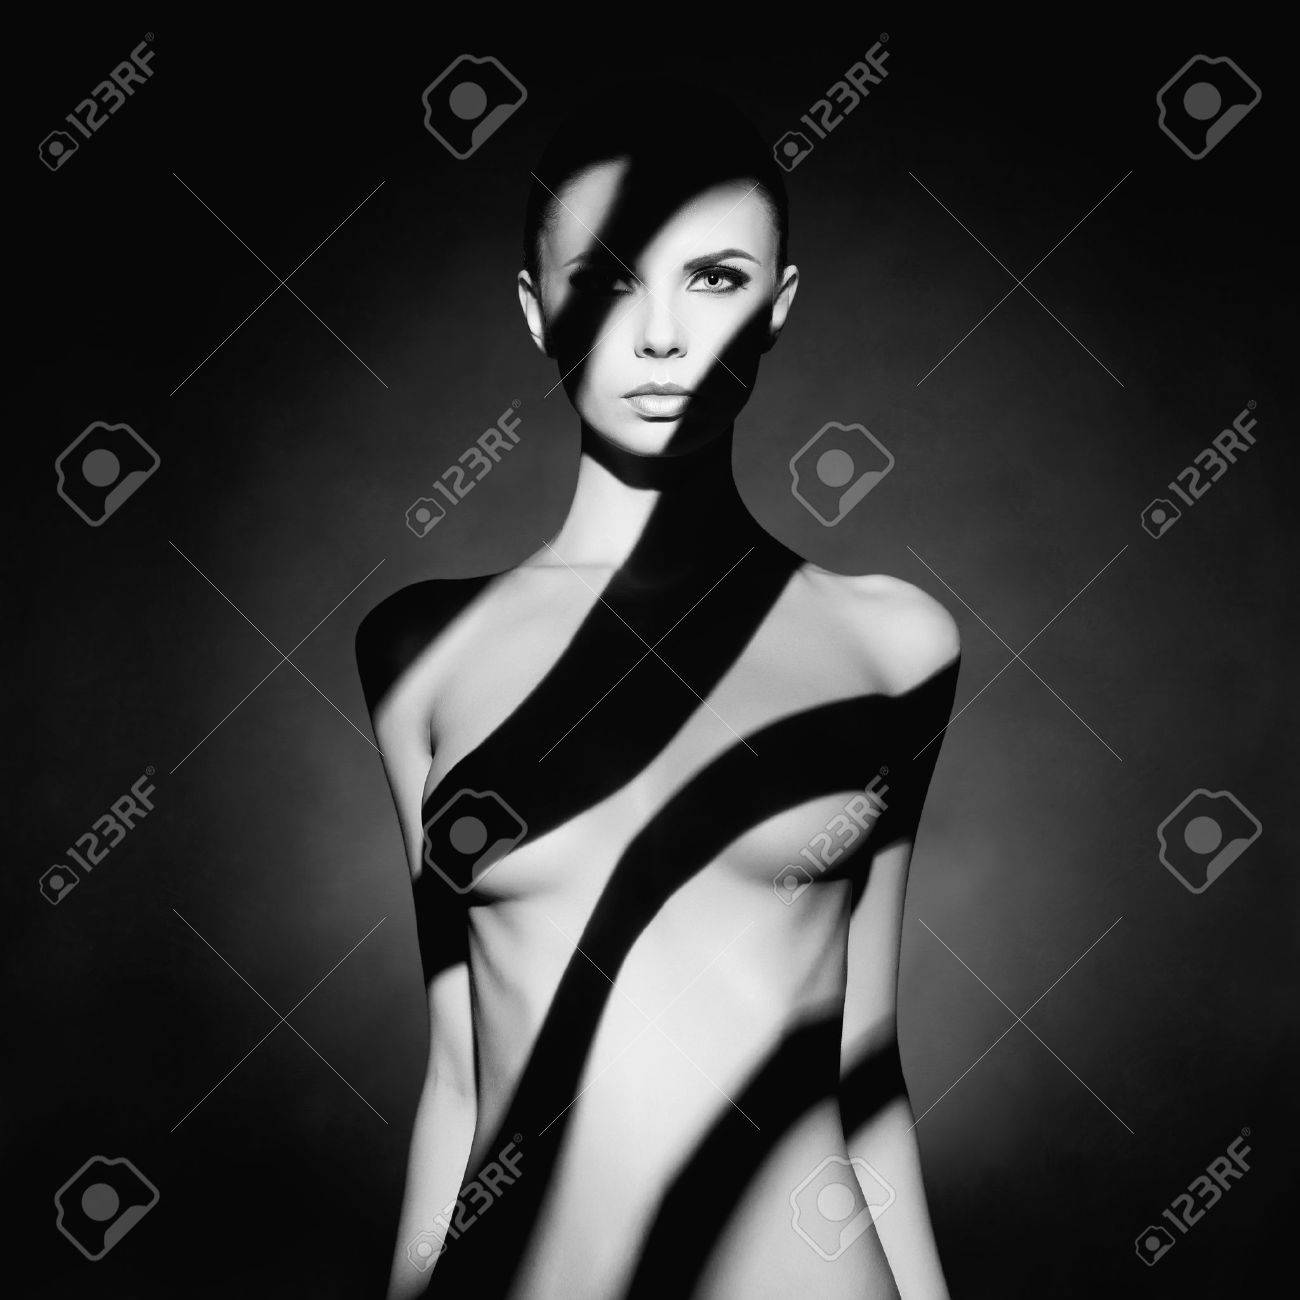 Fashion art studio portrait of elegant naked lady with shadow on her body Standard-Bild - 43005673